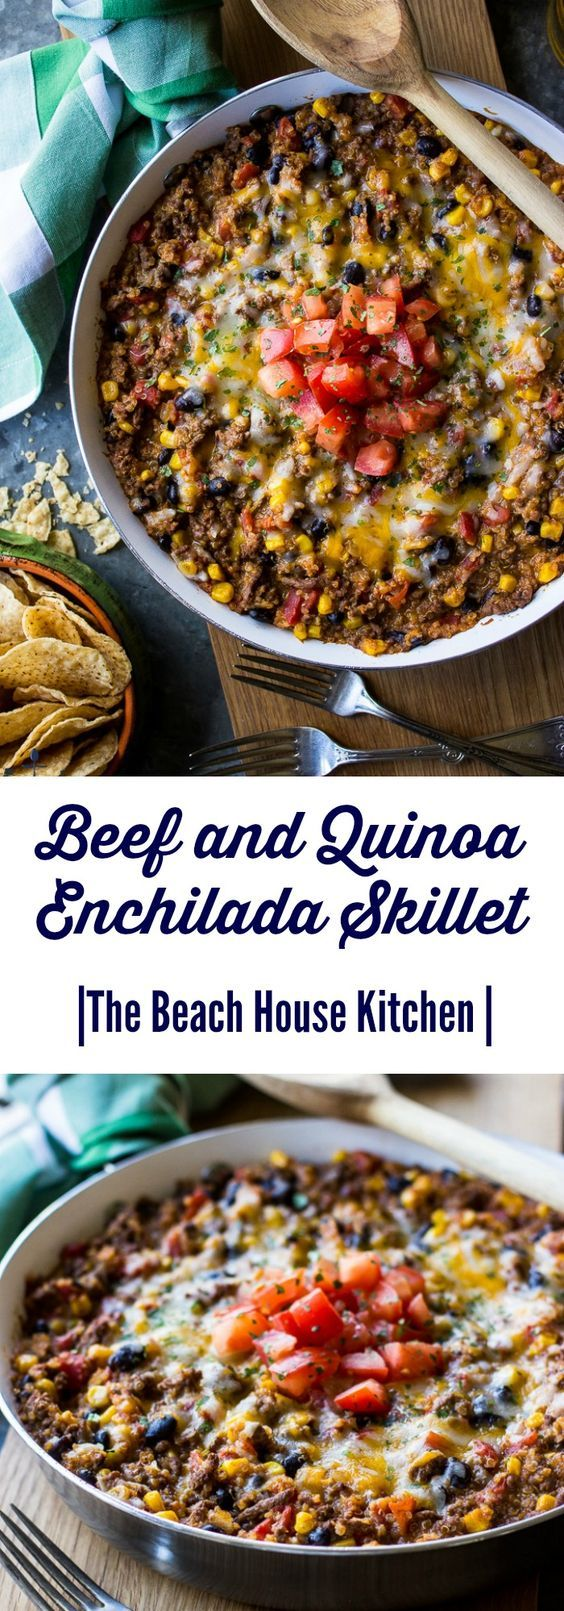 Mexican Paste Beef and Quinoa Enchilada Skillet | The Beach House Kitchen